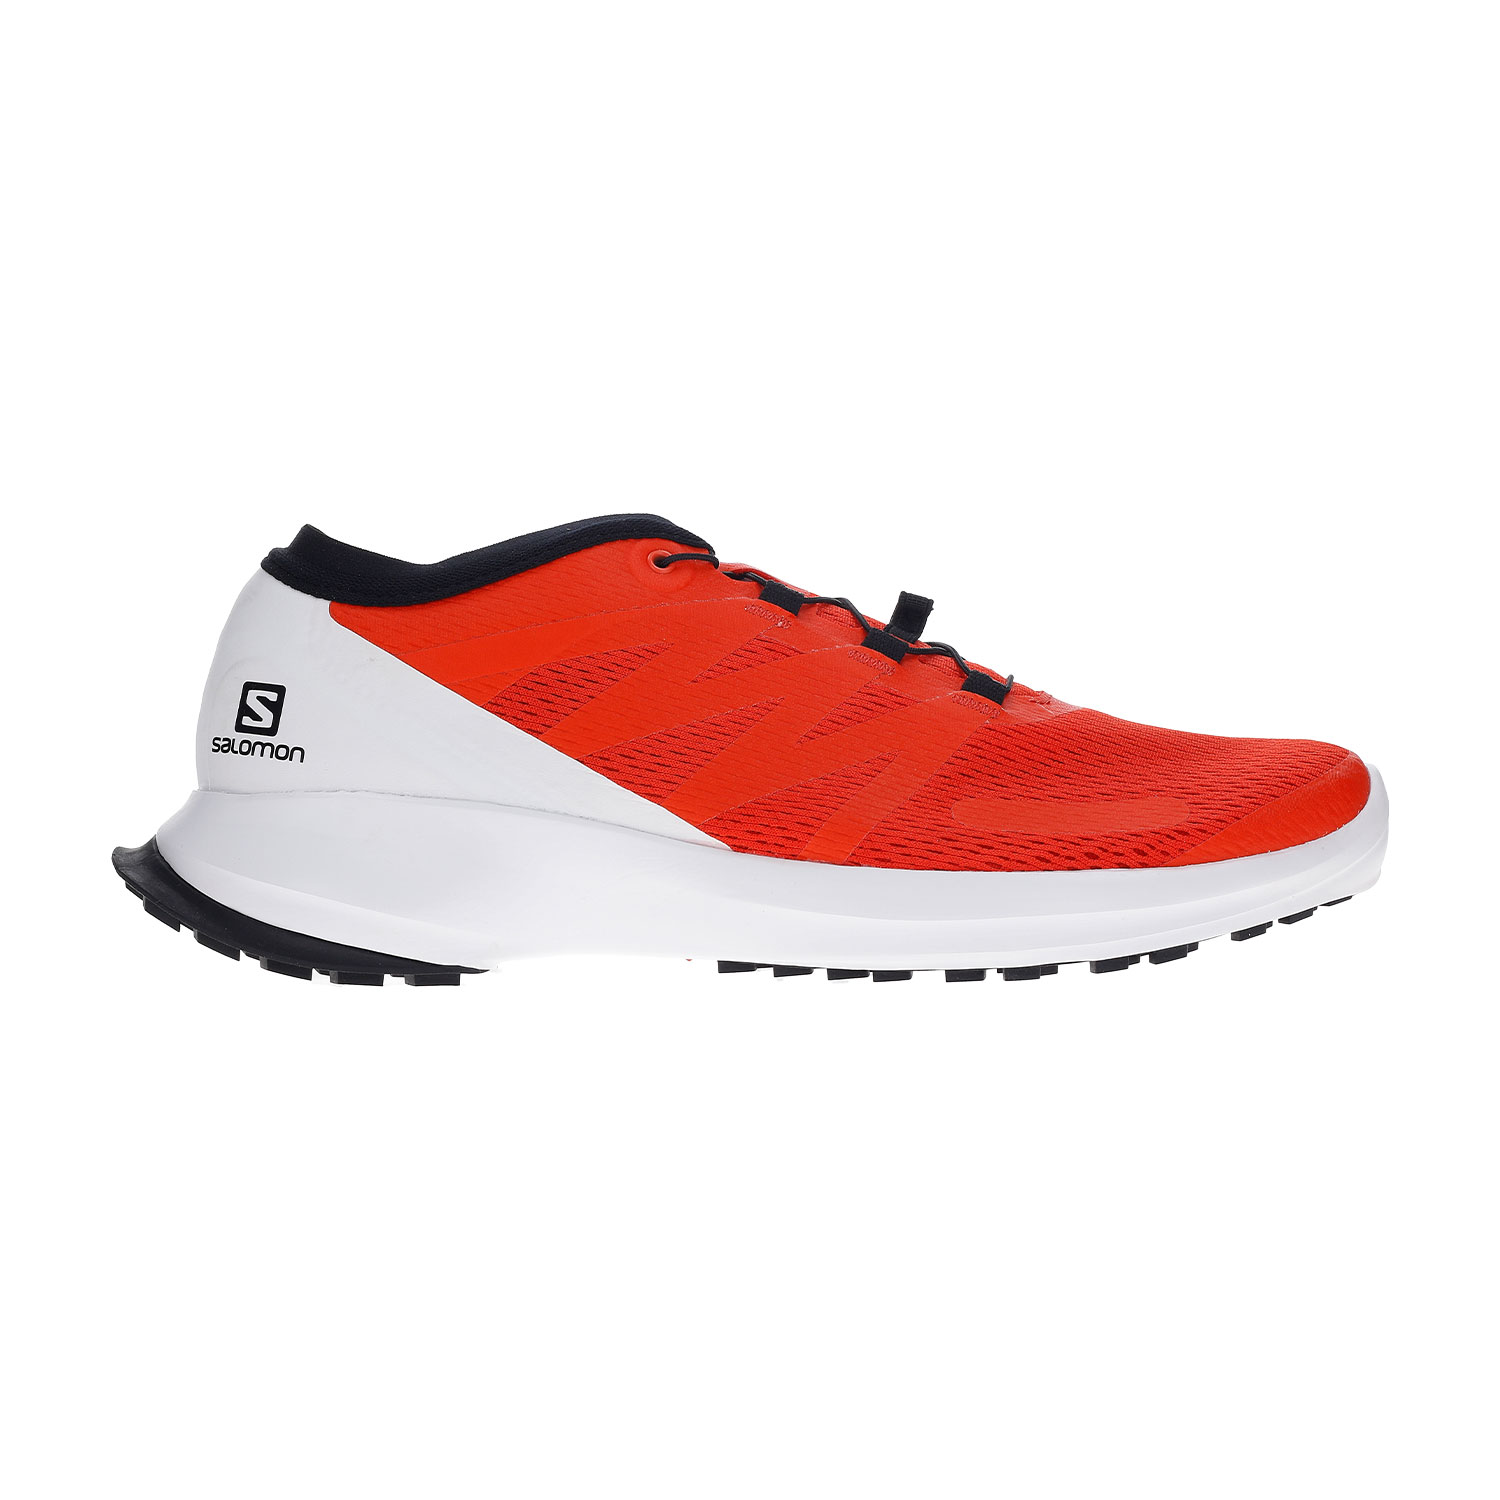 Salomon Sense Flow - Cherry Tomato/White/Black